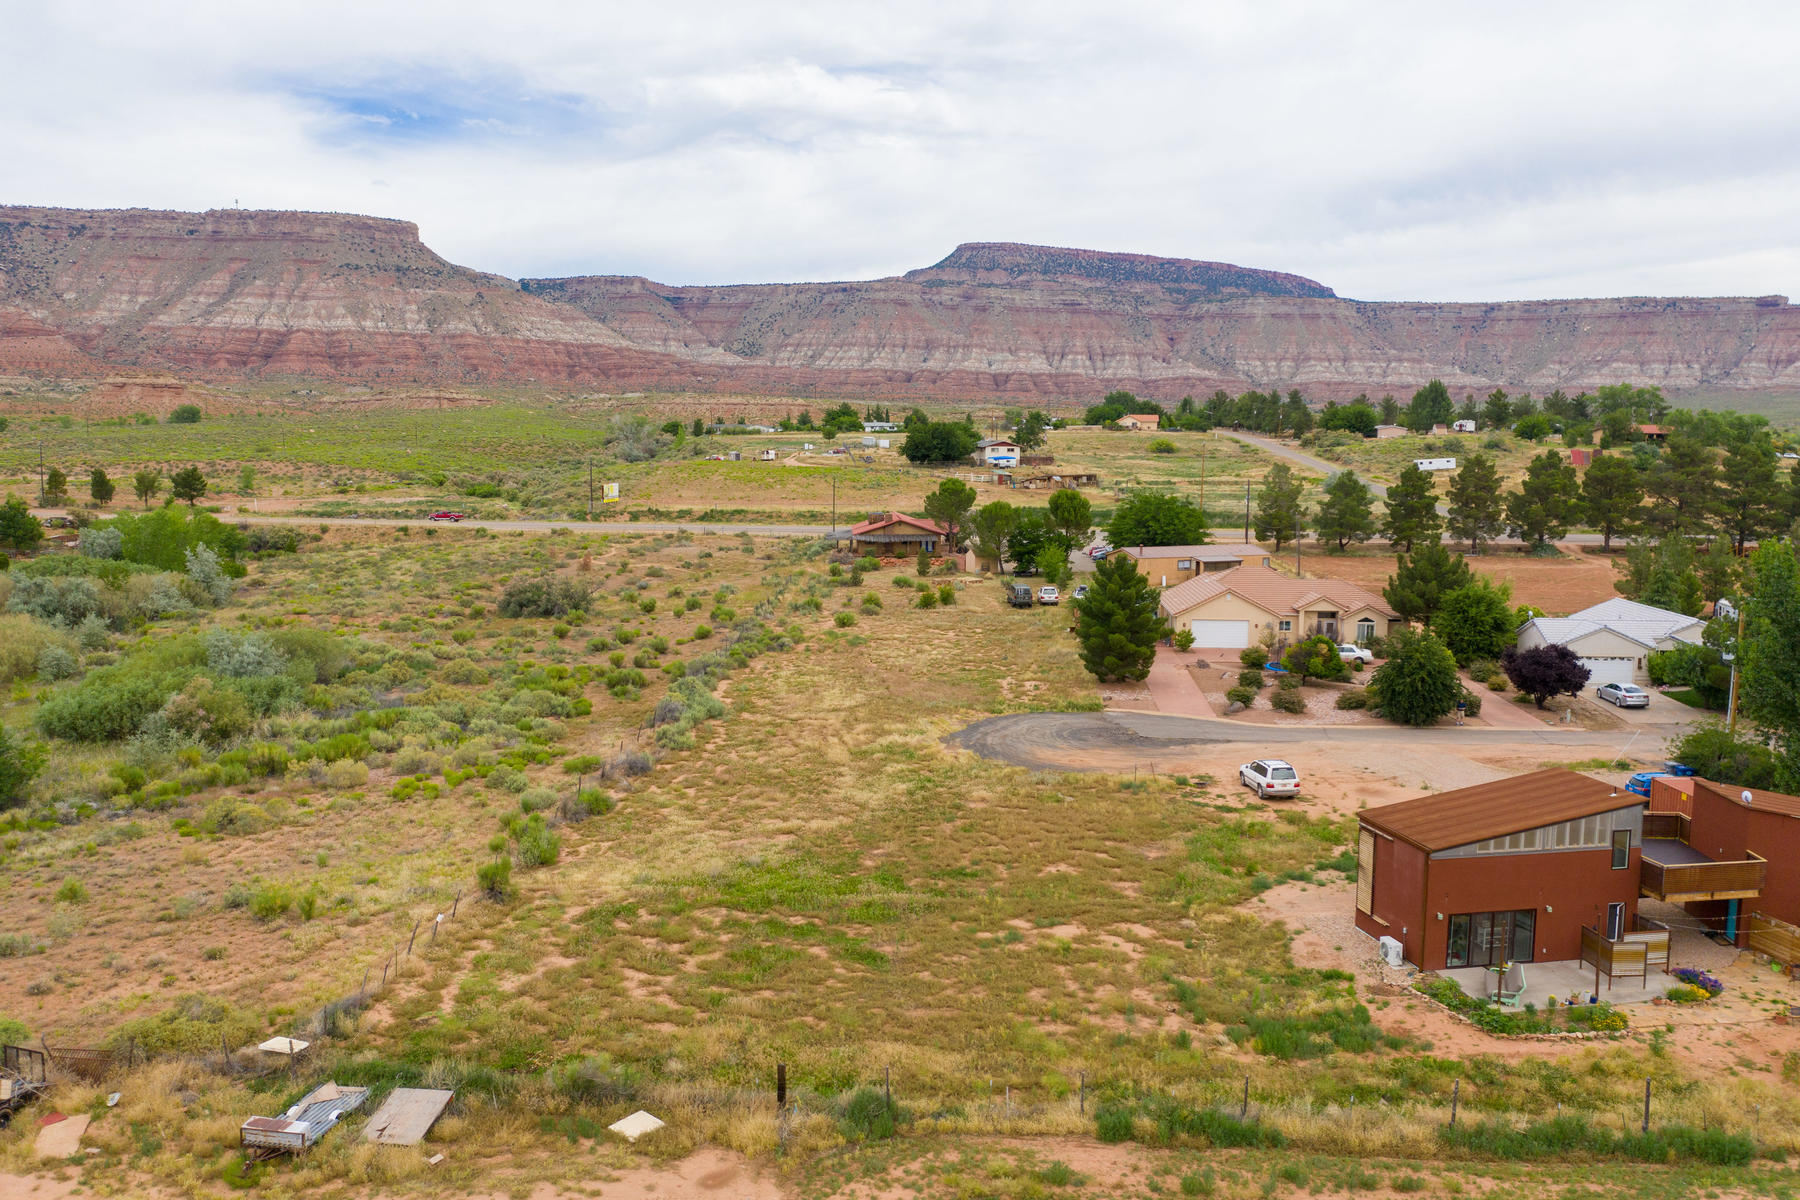 Land for Active at Virgin with Irrigation Water 192 W Park Ave #3 Virgin, Utah 84779 United States